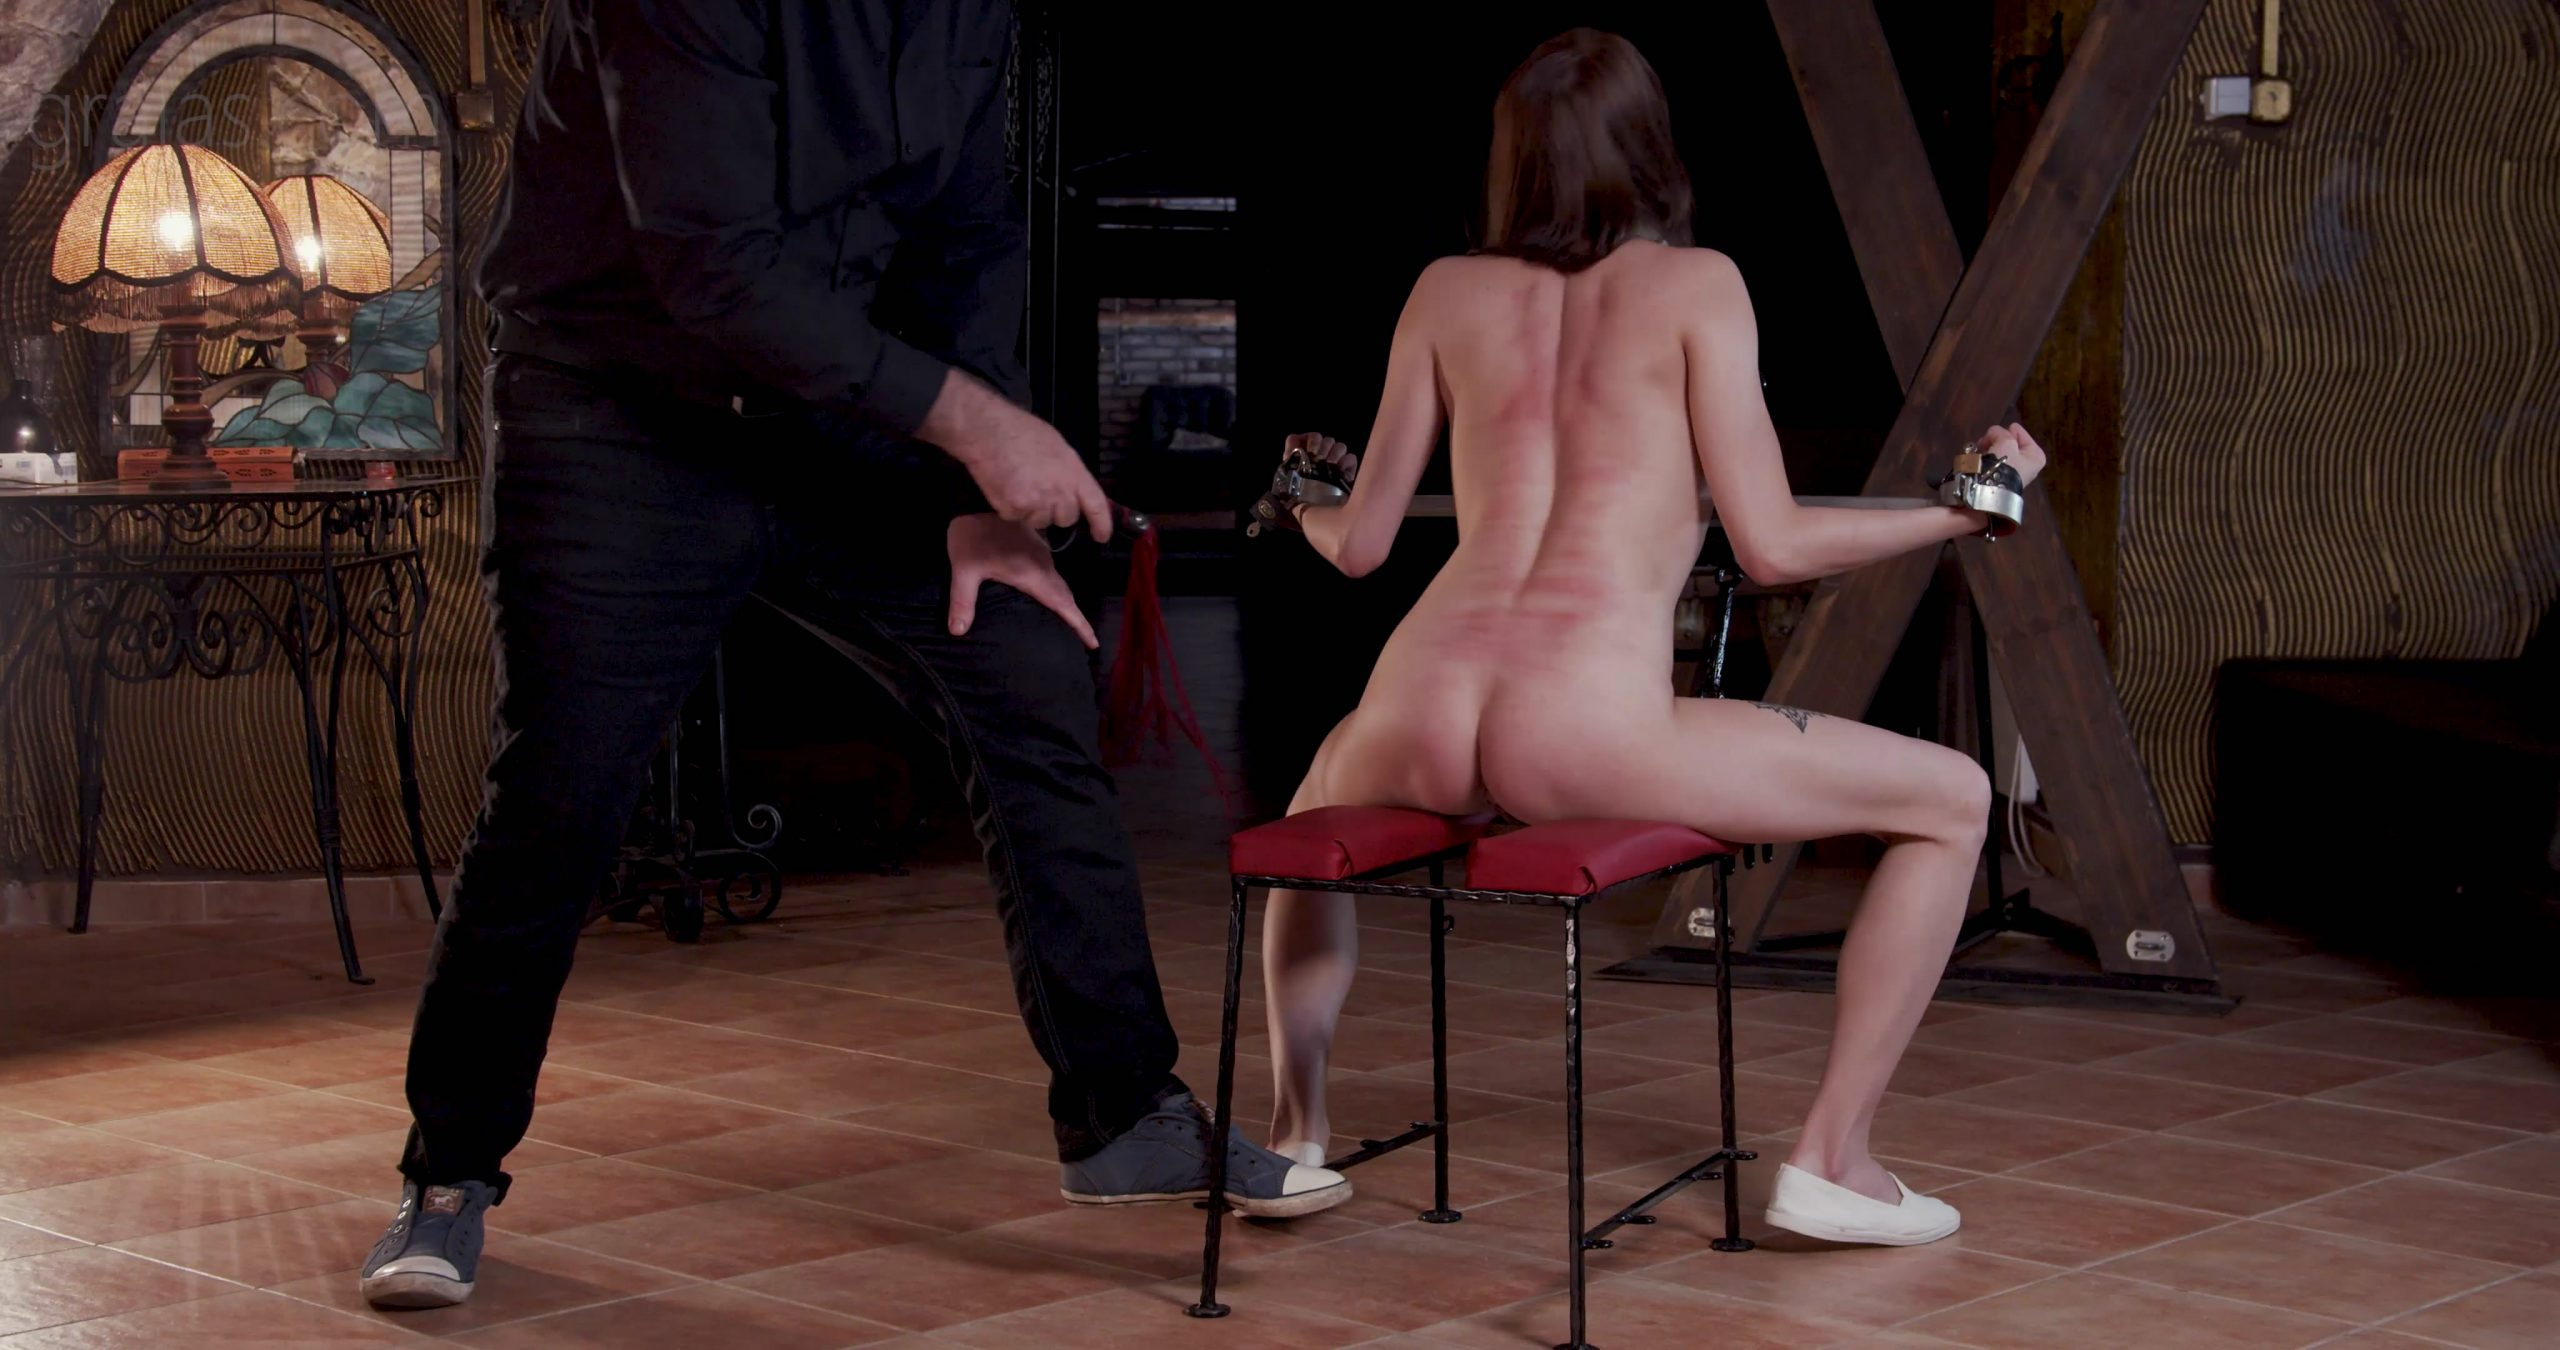 Graias – MP4/Ultra HD – MISHELLES PUNISHMENT (Part 1 of 2)